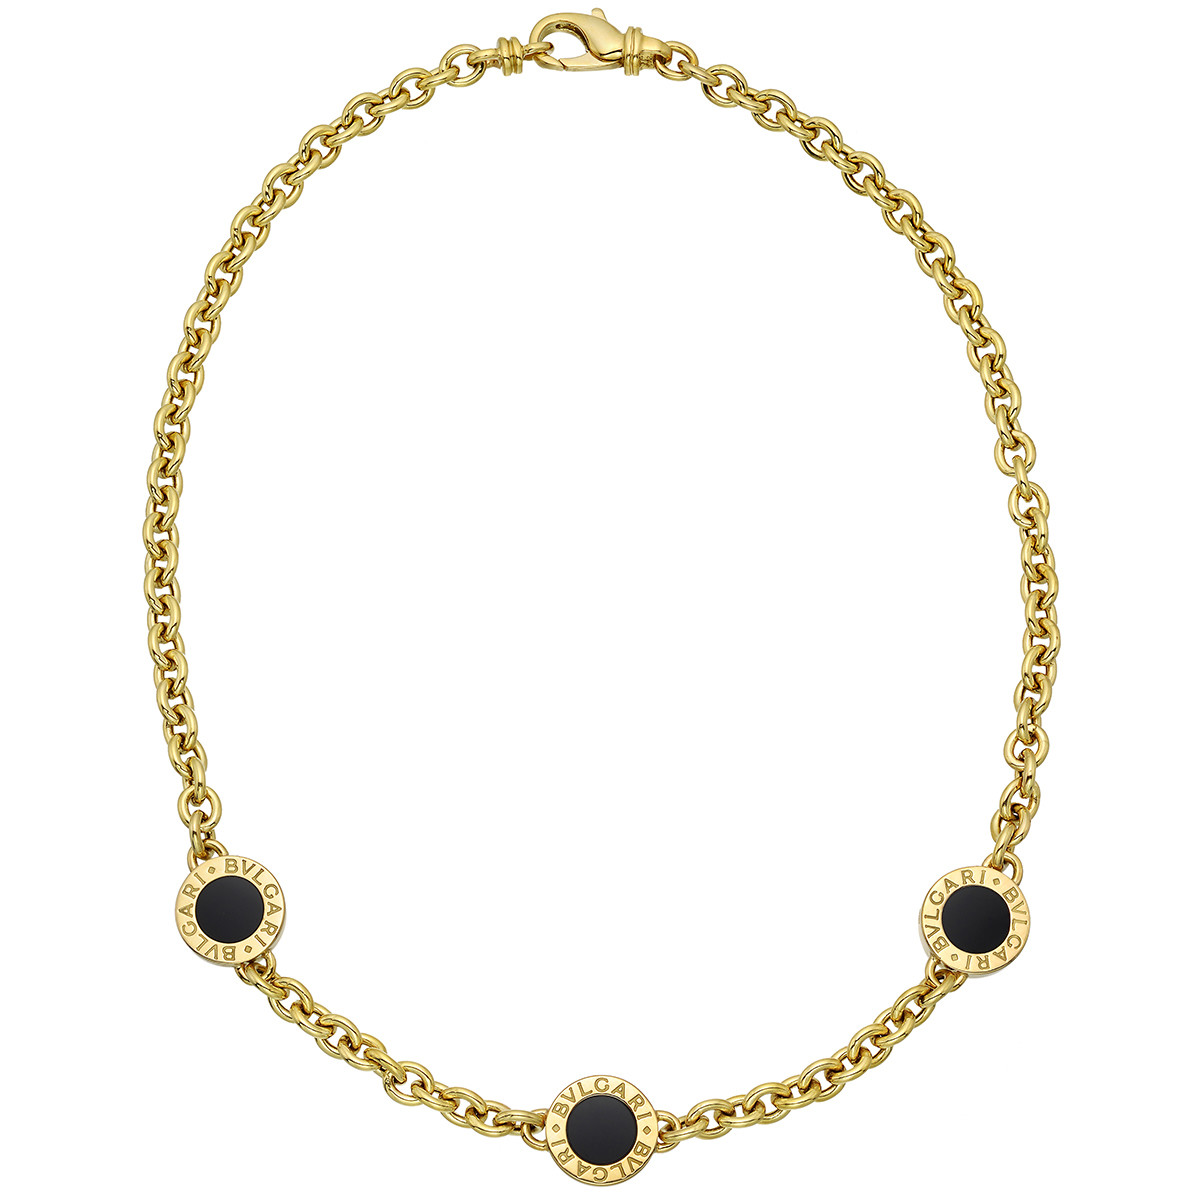 18k Yellow Gold & Black Onyx Station Necklace